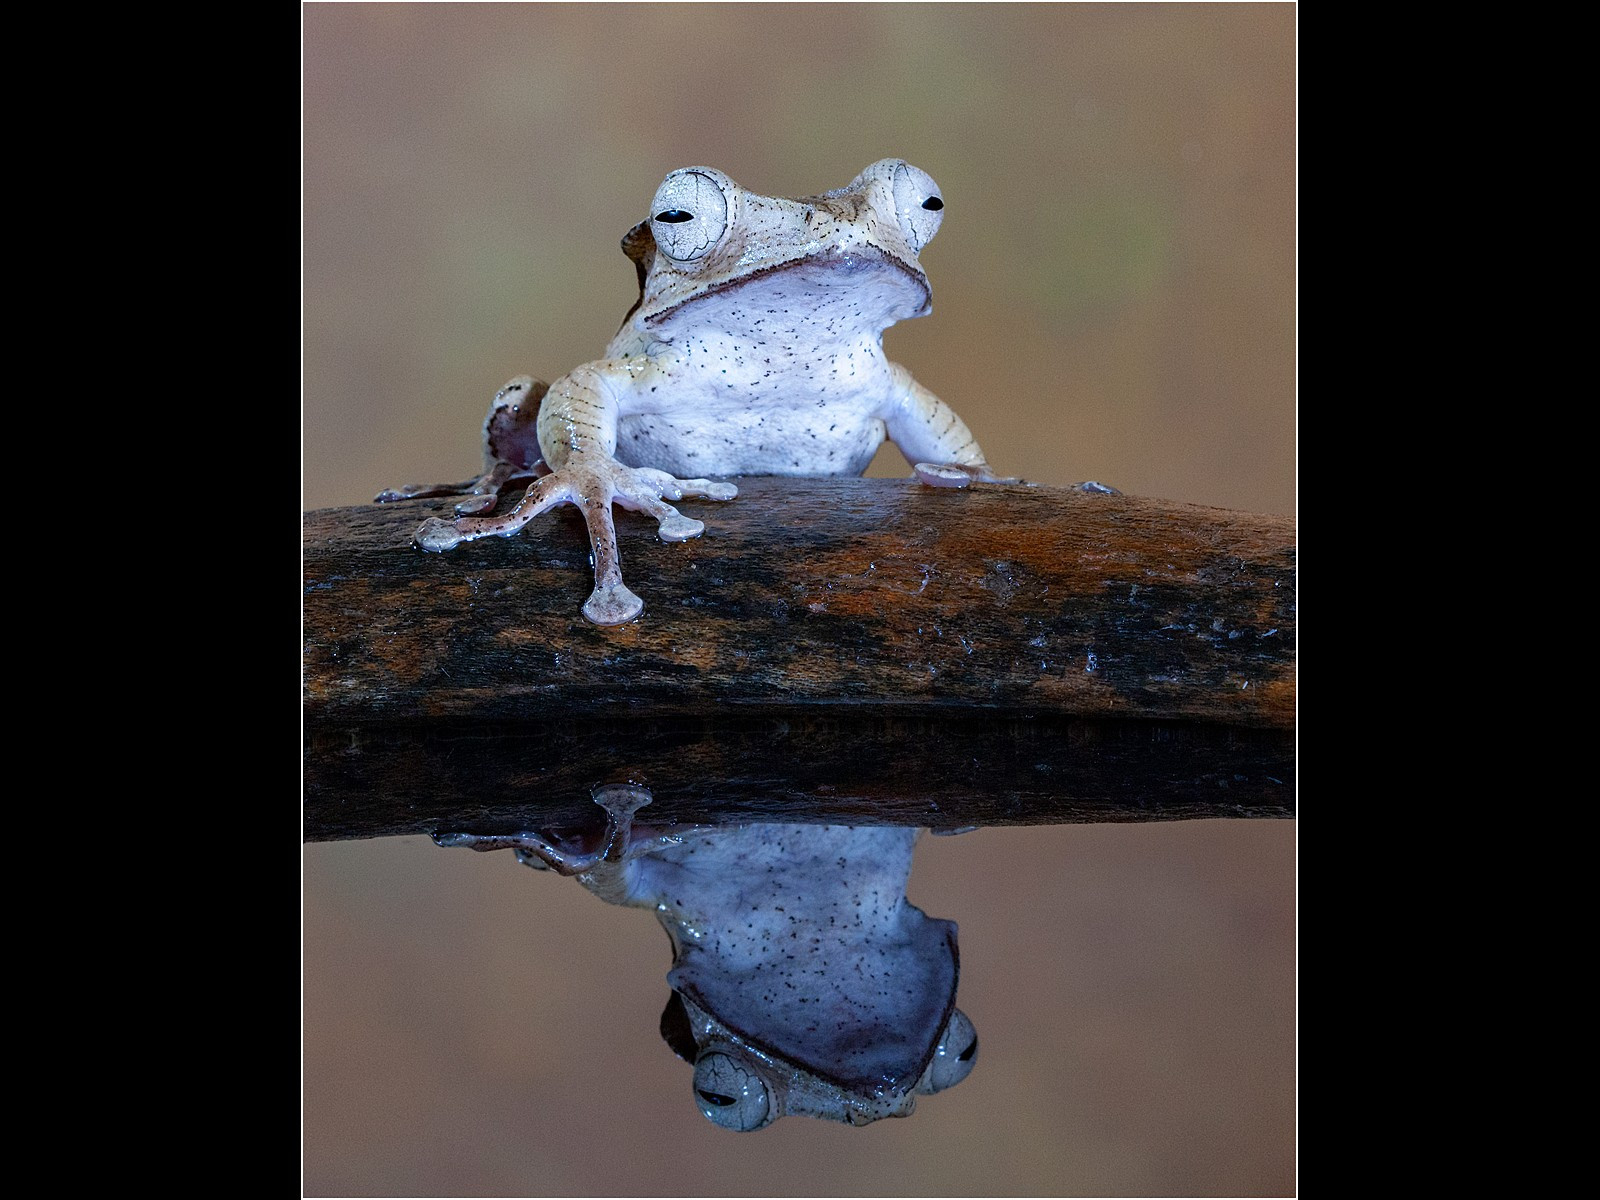 Golden Tree Frog & Reflection